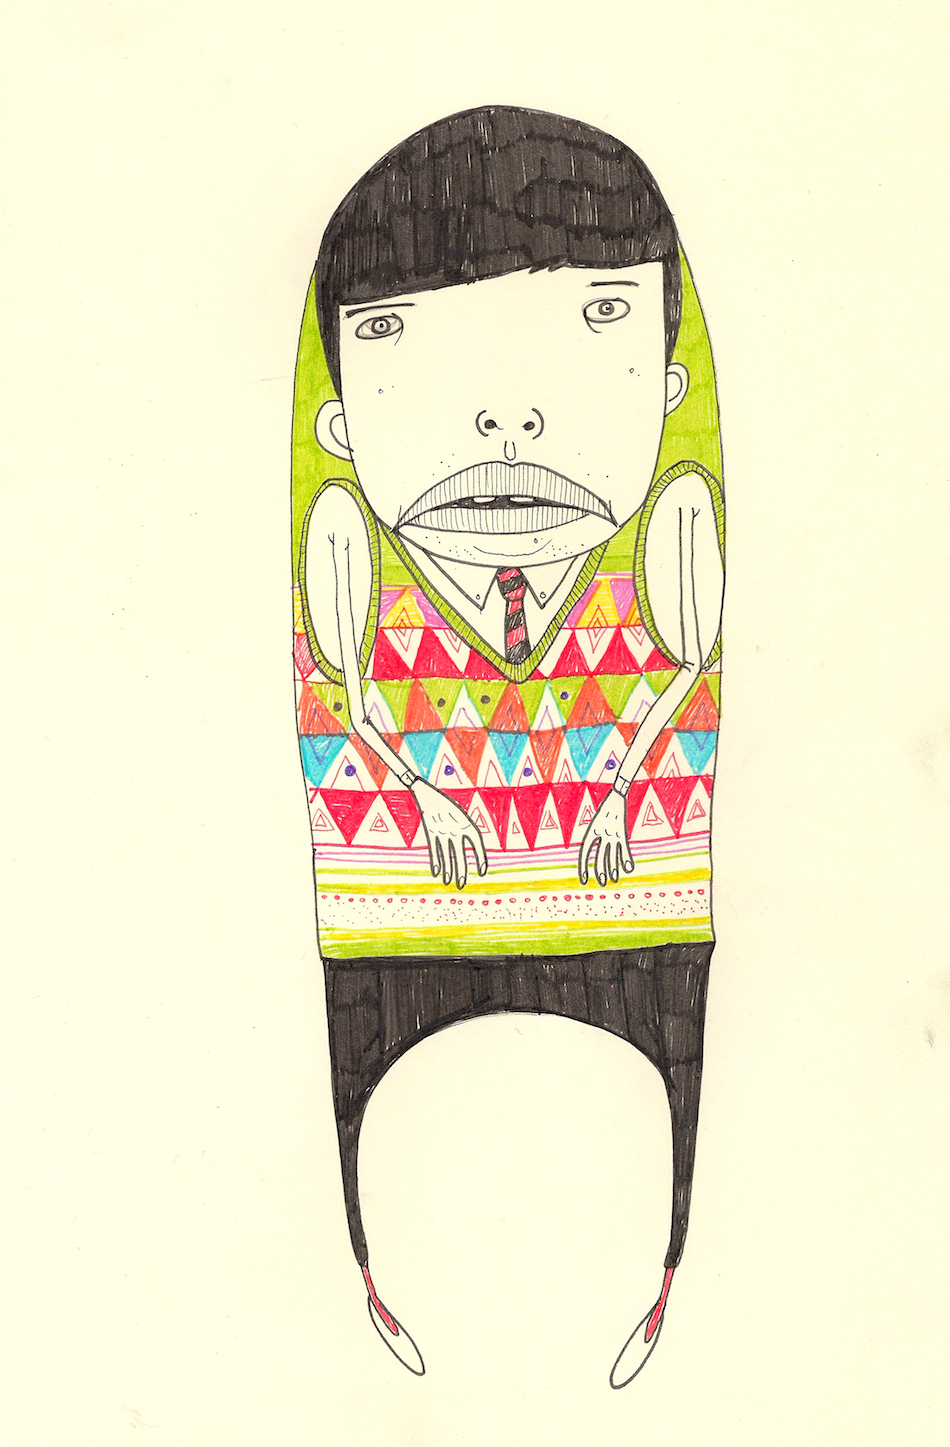 """Jack Henry and His Colorful Knitted Vest"", Felt Tip Pens, 8x11, $650 (framed)"